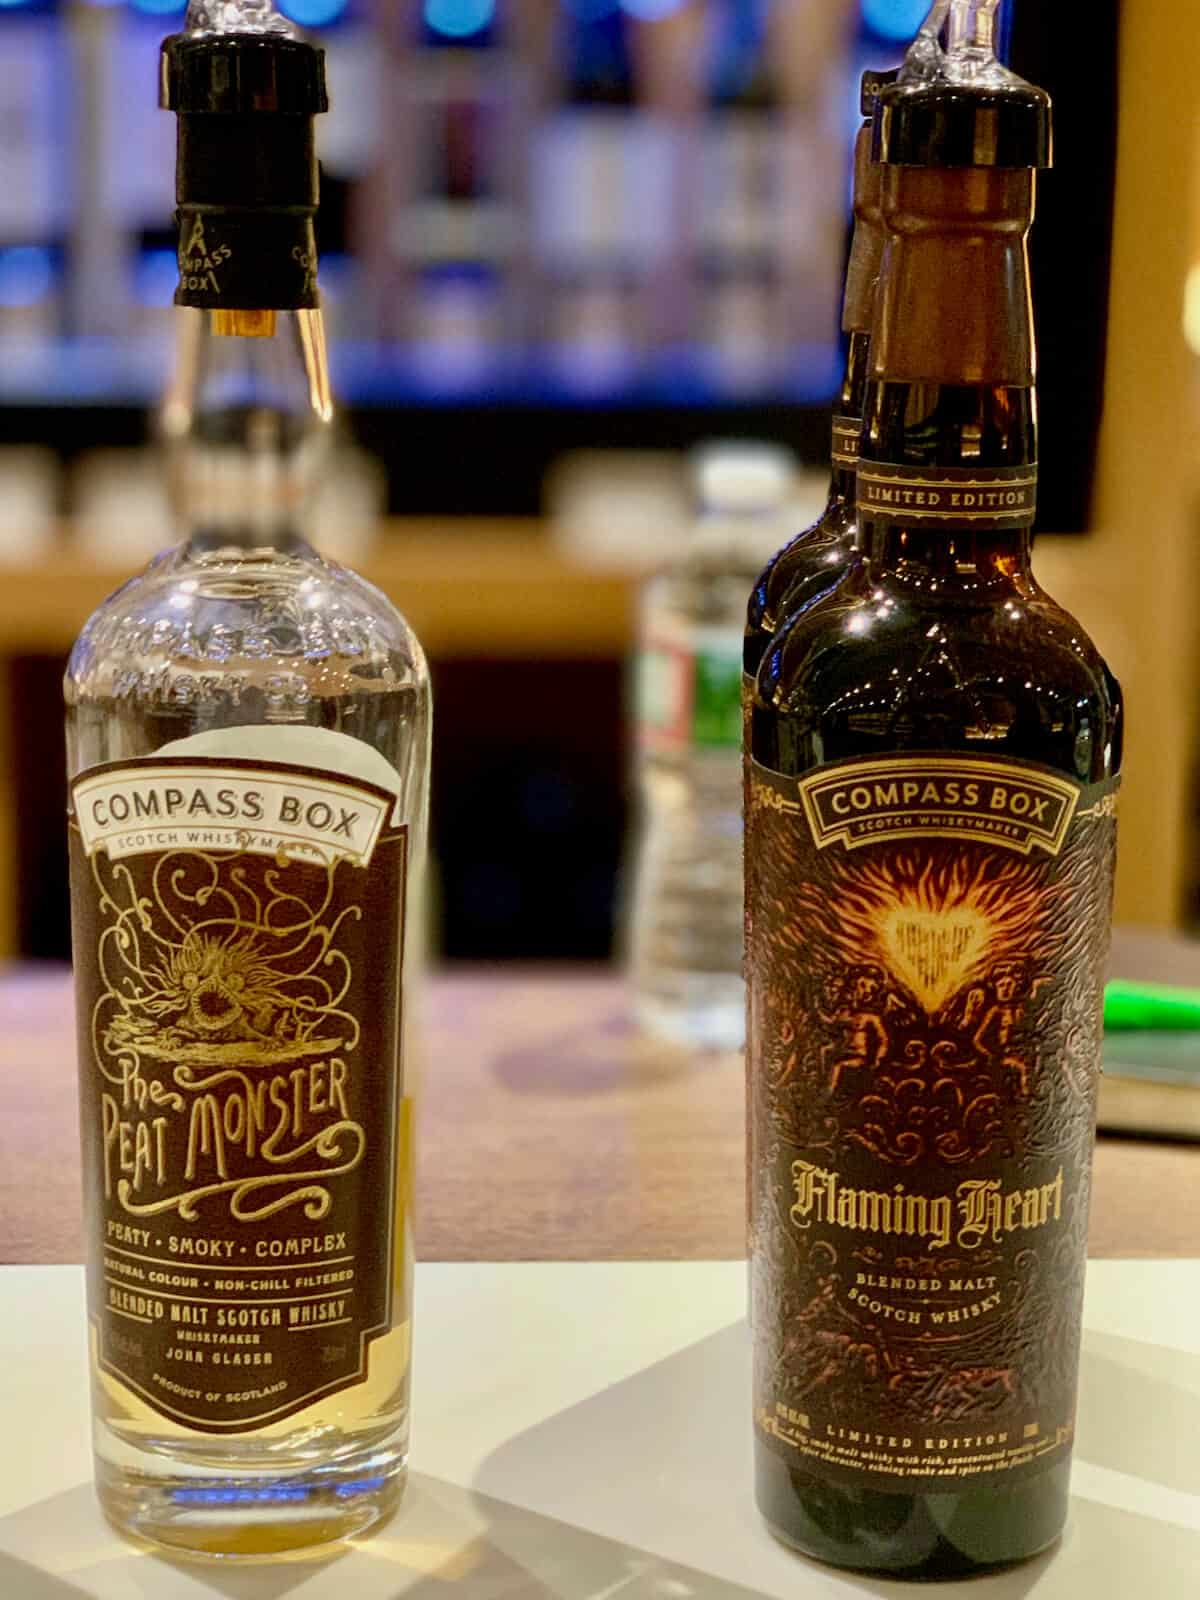 Compass Box Blended Scotch Peat Monster and Flaming Heart in bottles on a counter.